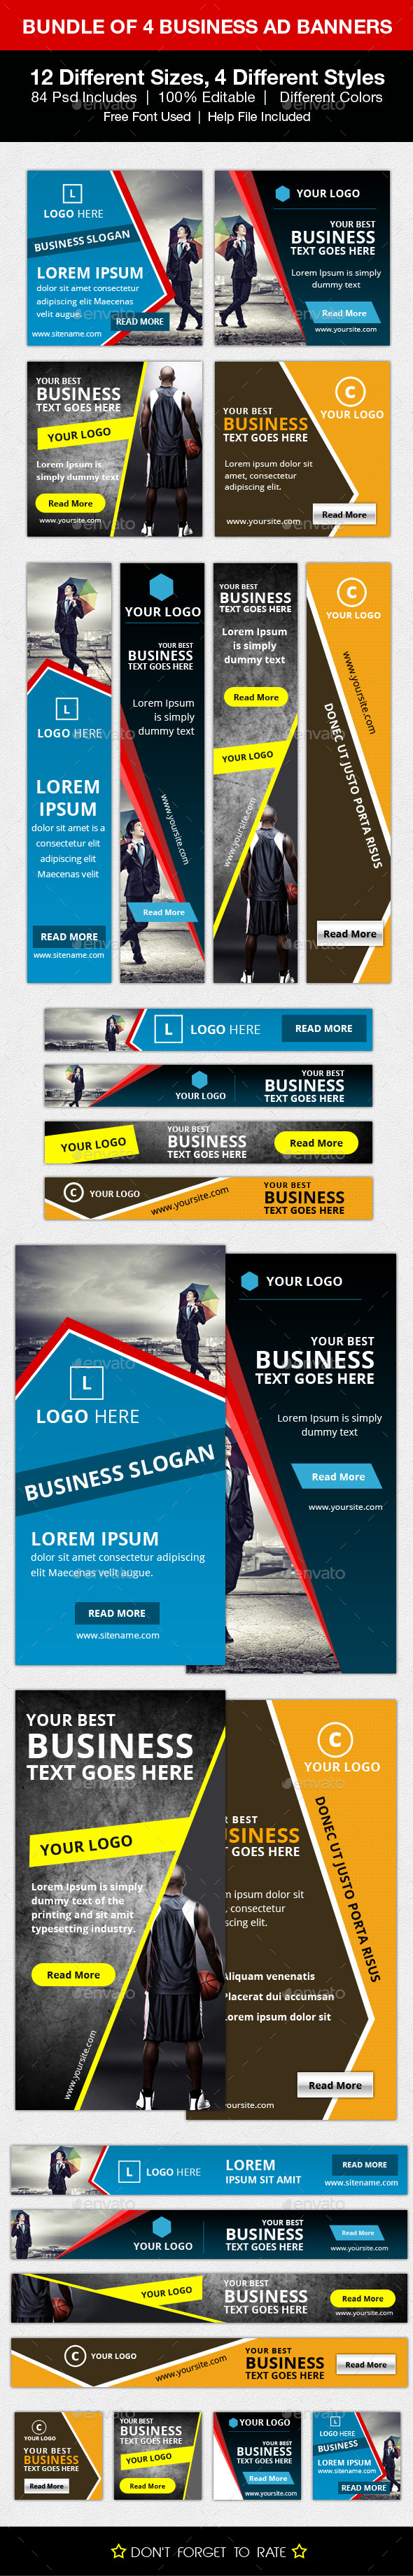 Bundle of 4 Business Ad Banners - Banners & Ads Web Elements